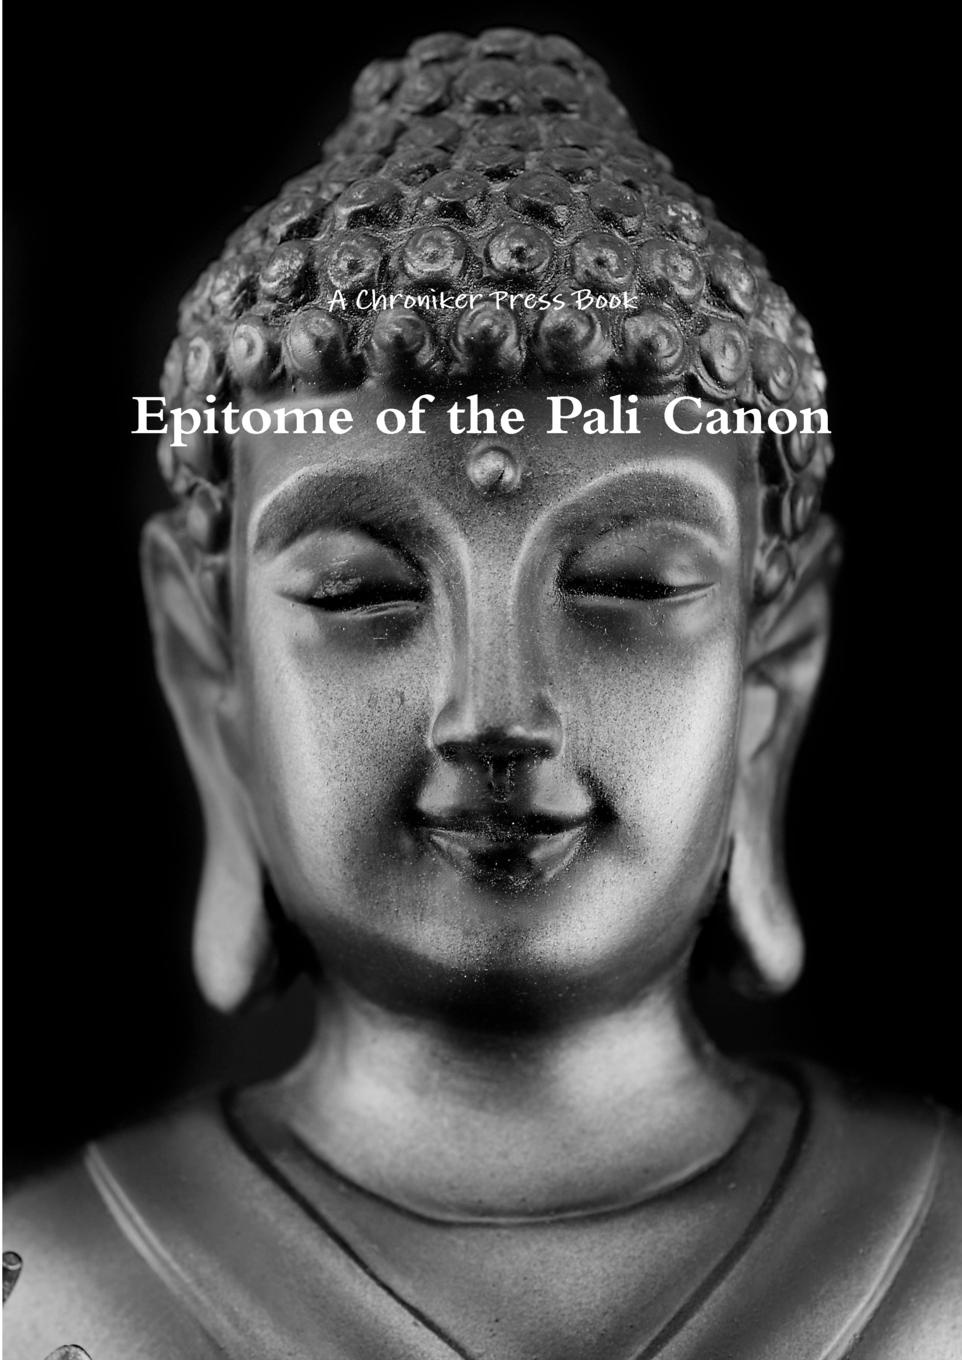 Book Chroniker Press, Chroniker Press Book Epitome of the Pali Canon a collection of astronomy articles by frank schlesinger